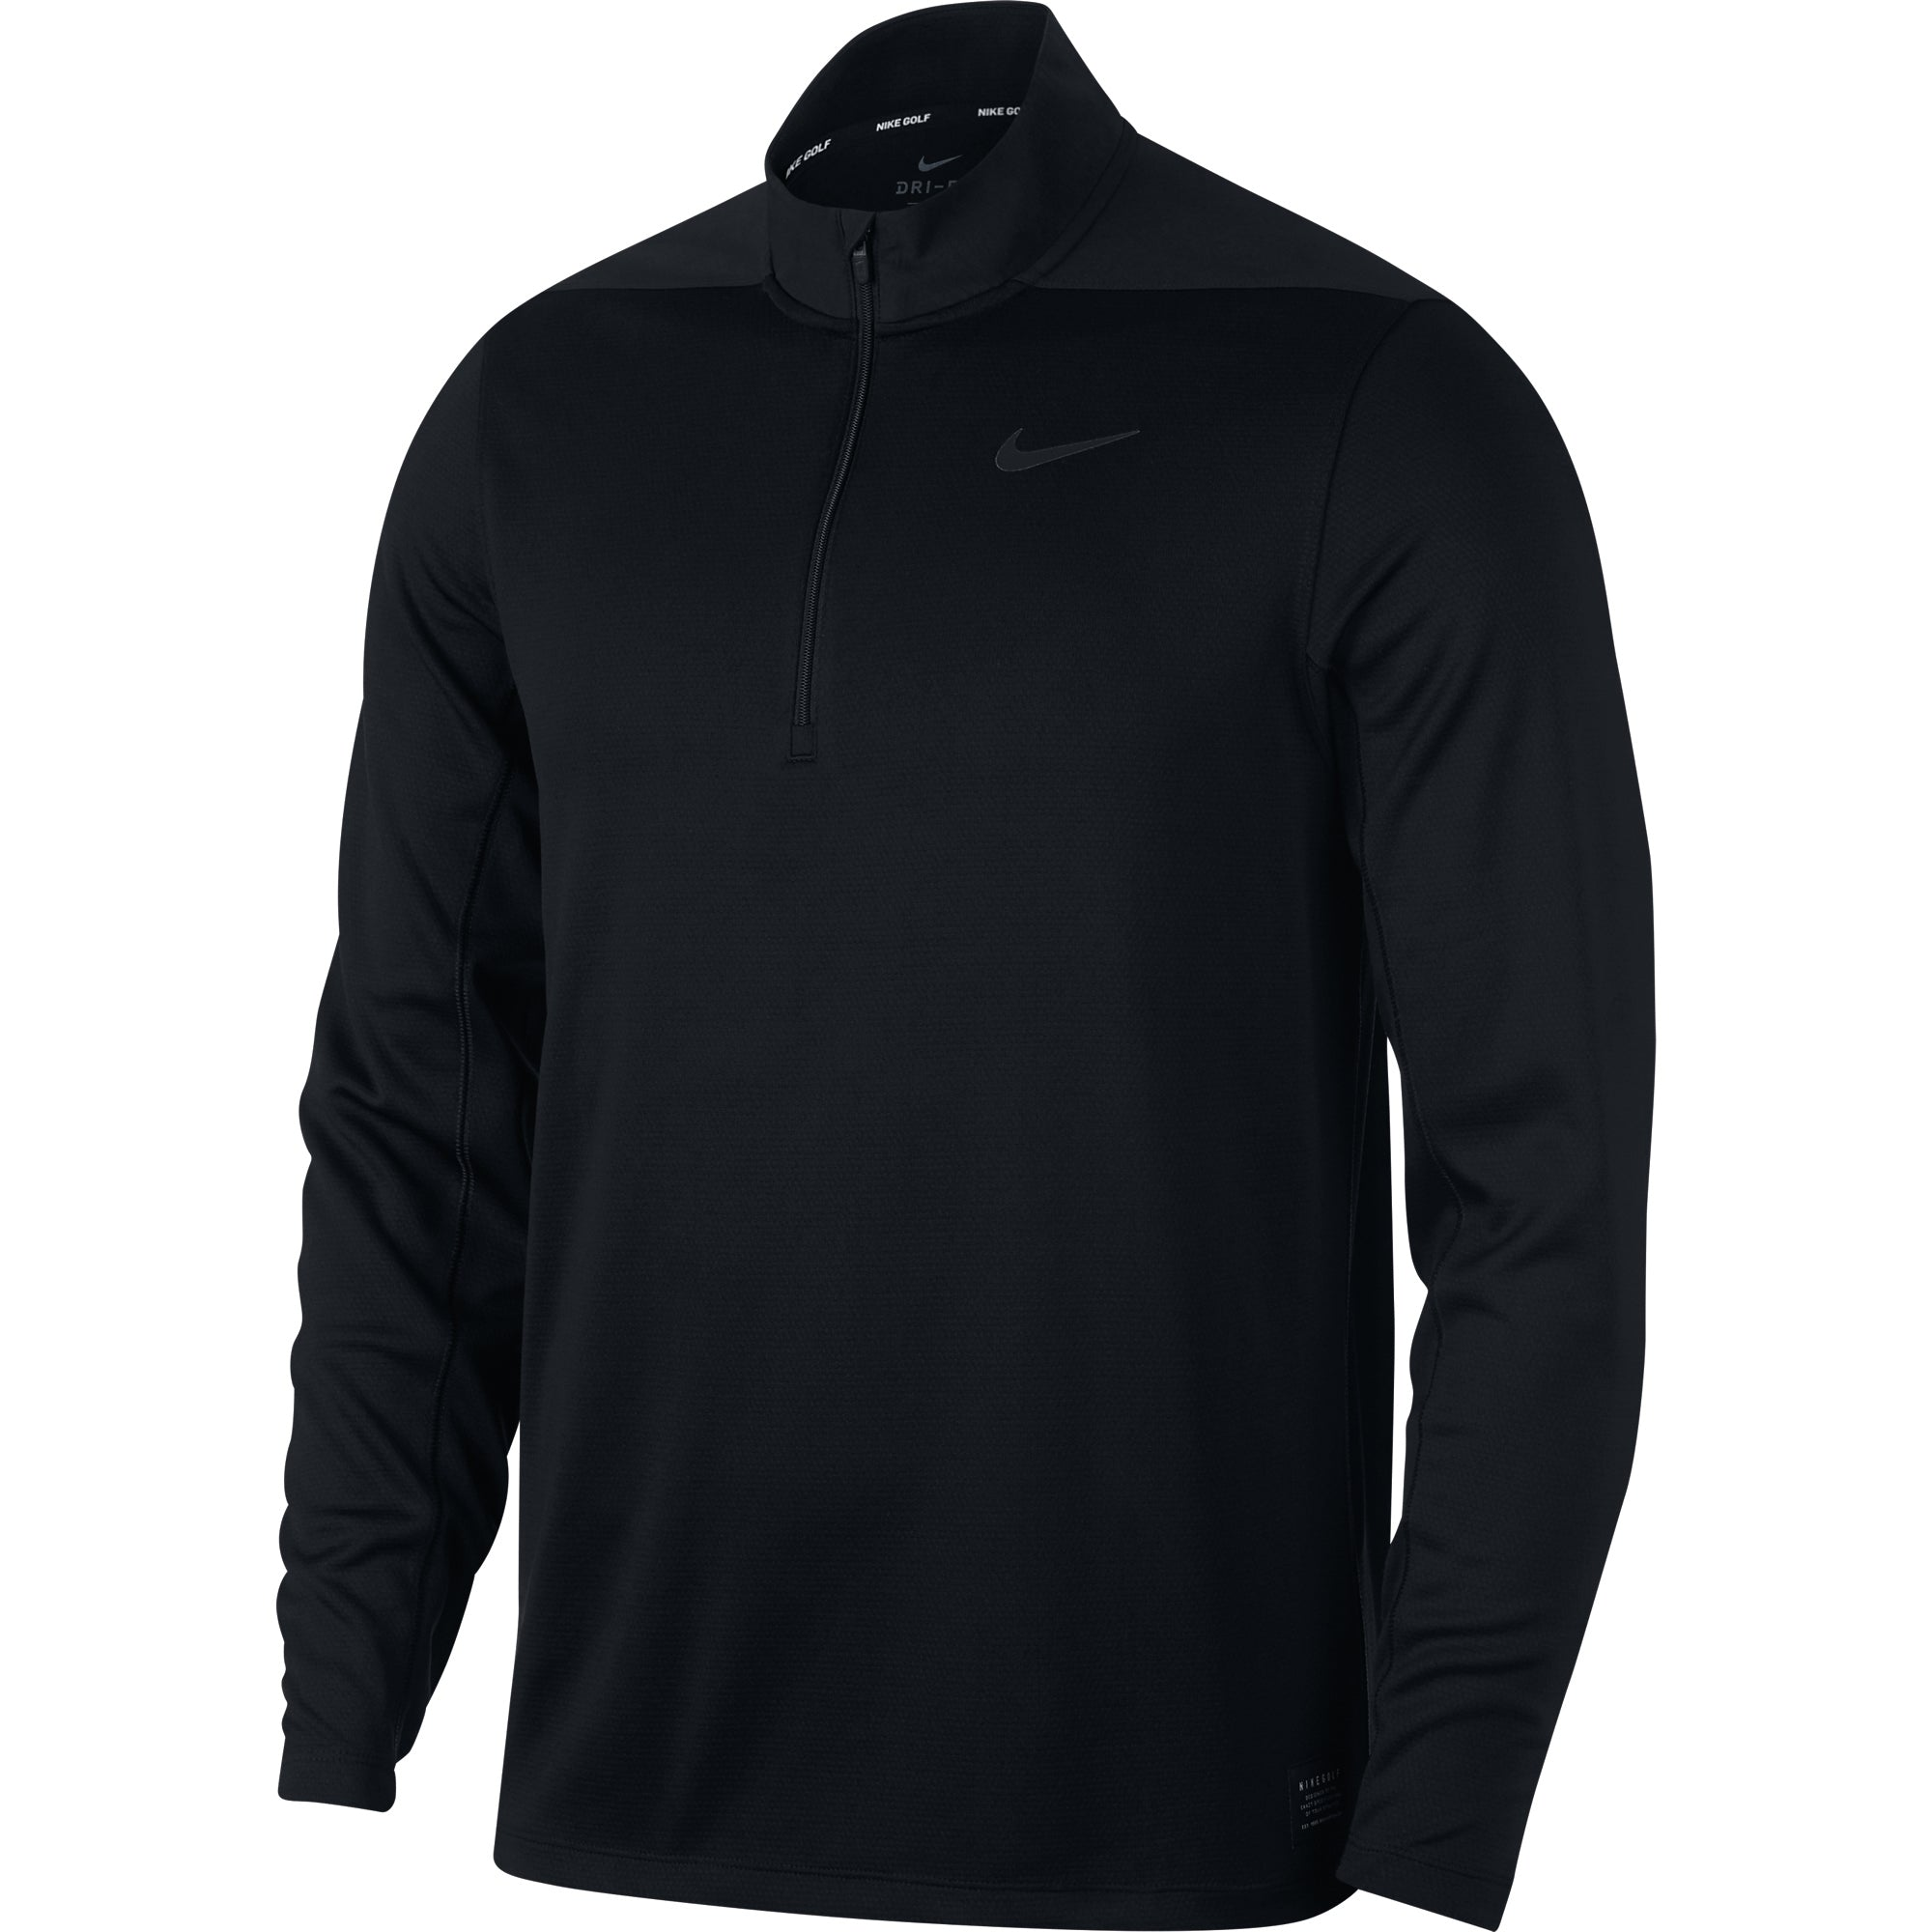 Nike Core Dri-Fit 1/2 zip top - Black